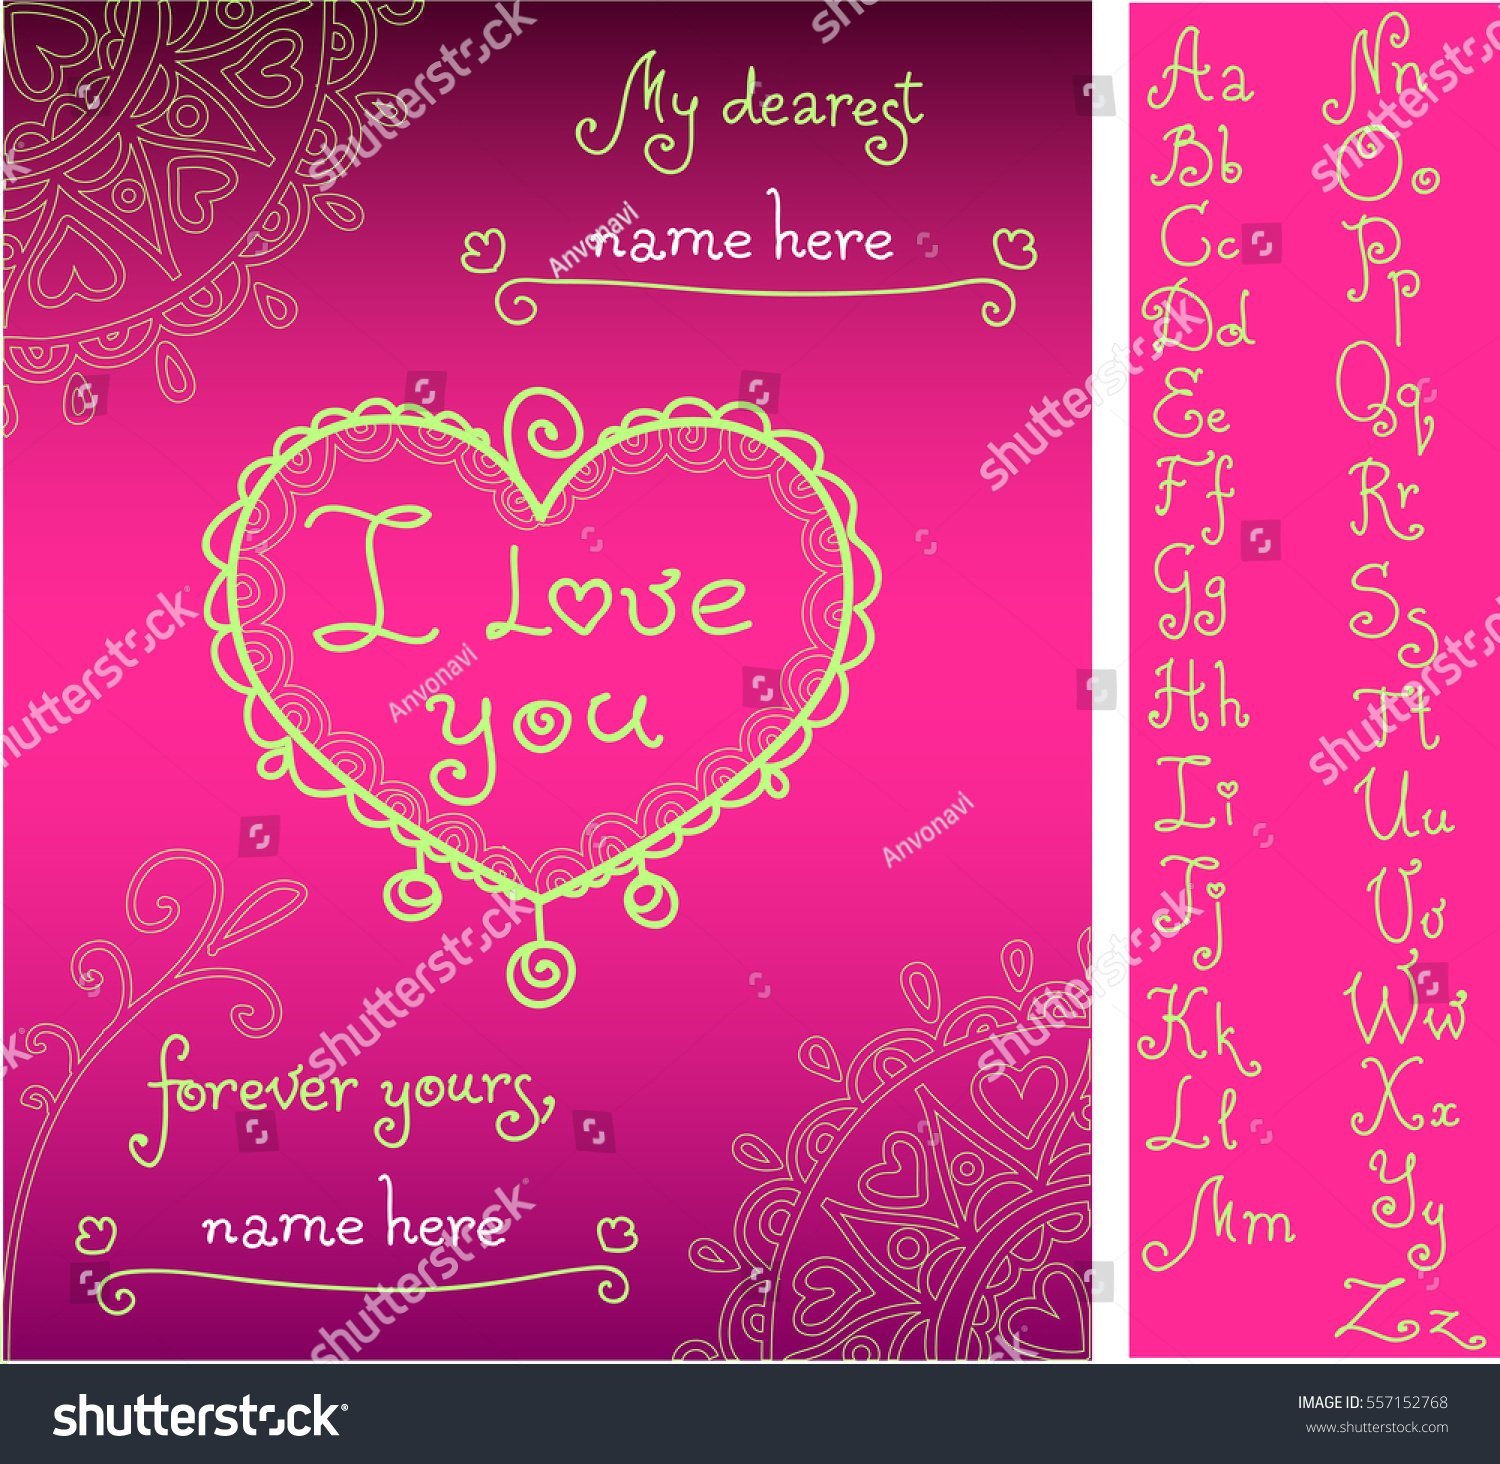 template for valentines greeting card with handwritten alphabet compose names from attached letters doodle